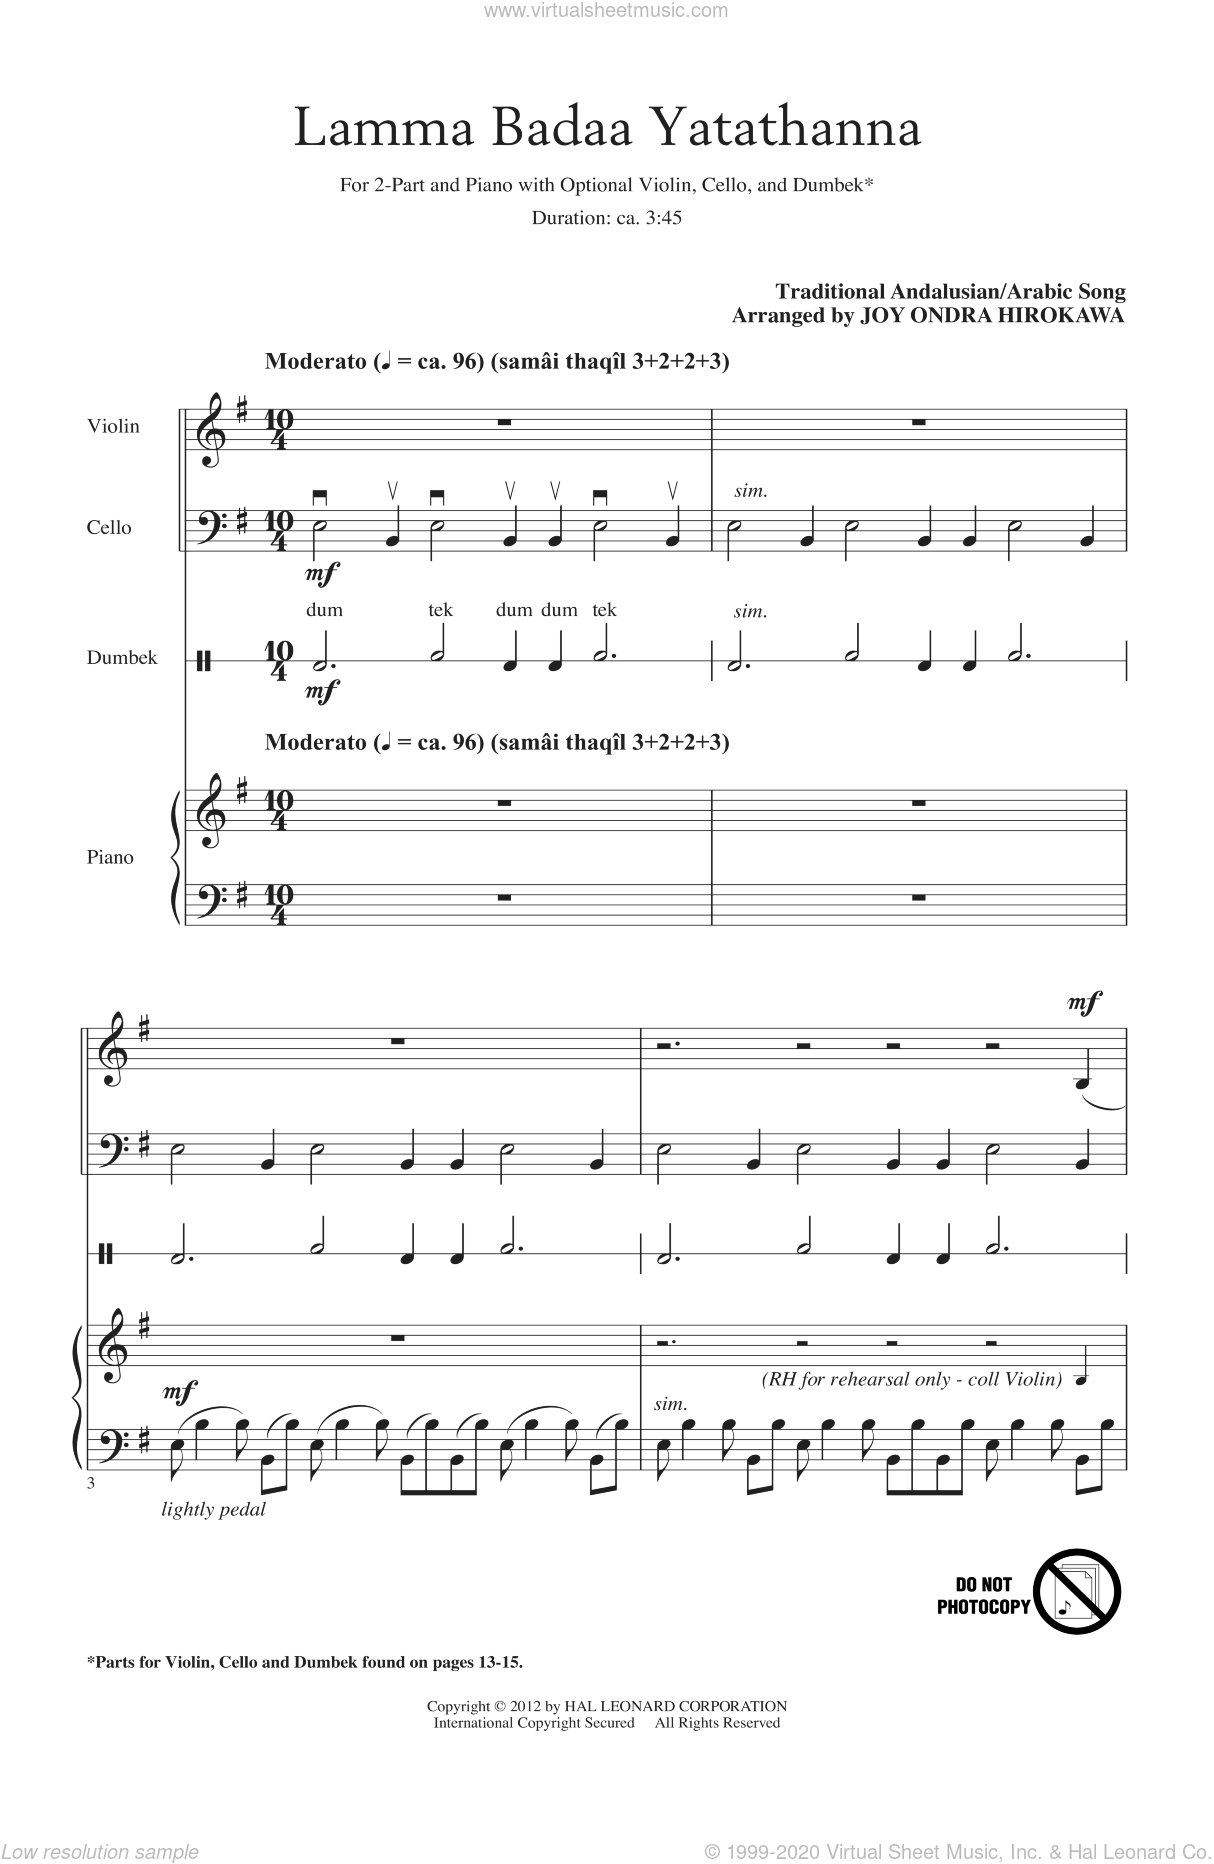 Lamma Badaa Yatathanna sheet music for choir (2-Part) by Joy Ondra Hirokawa, intermediate duet